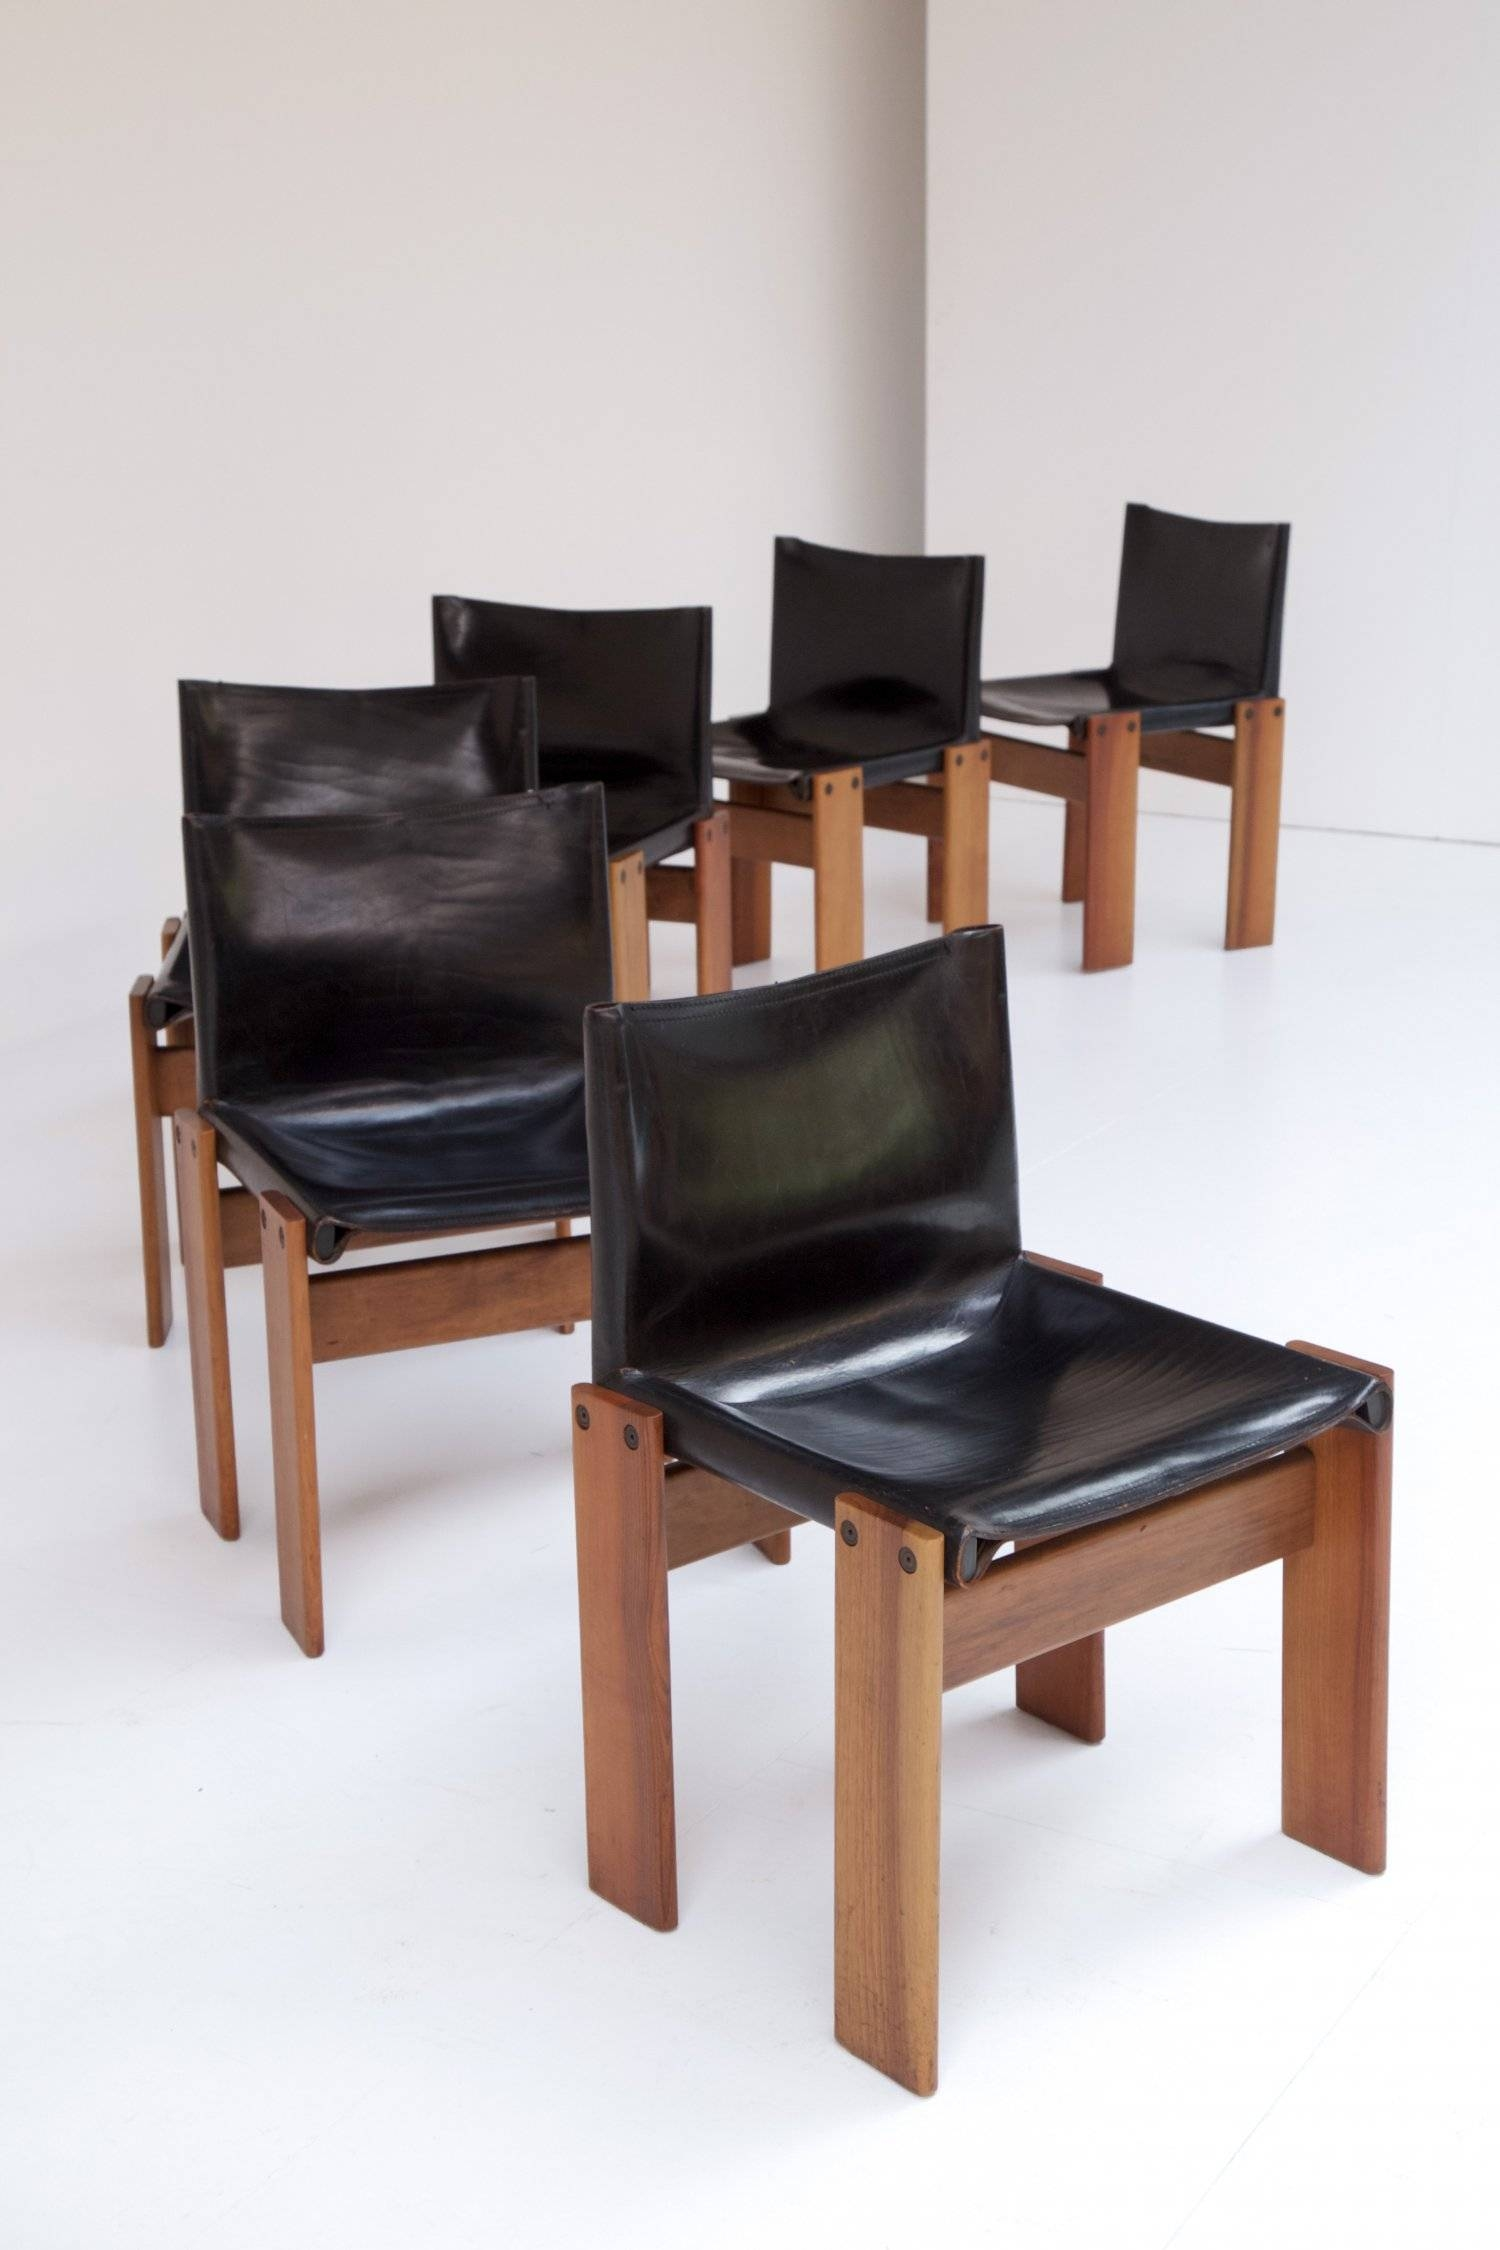 Monk Chairs Afra & Tobia Scarpa - Vanlandschoote within Monk Chairs (Image 21 of 30)